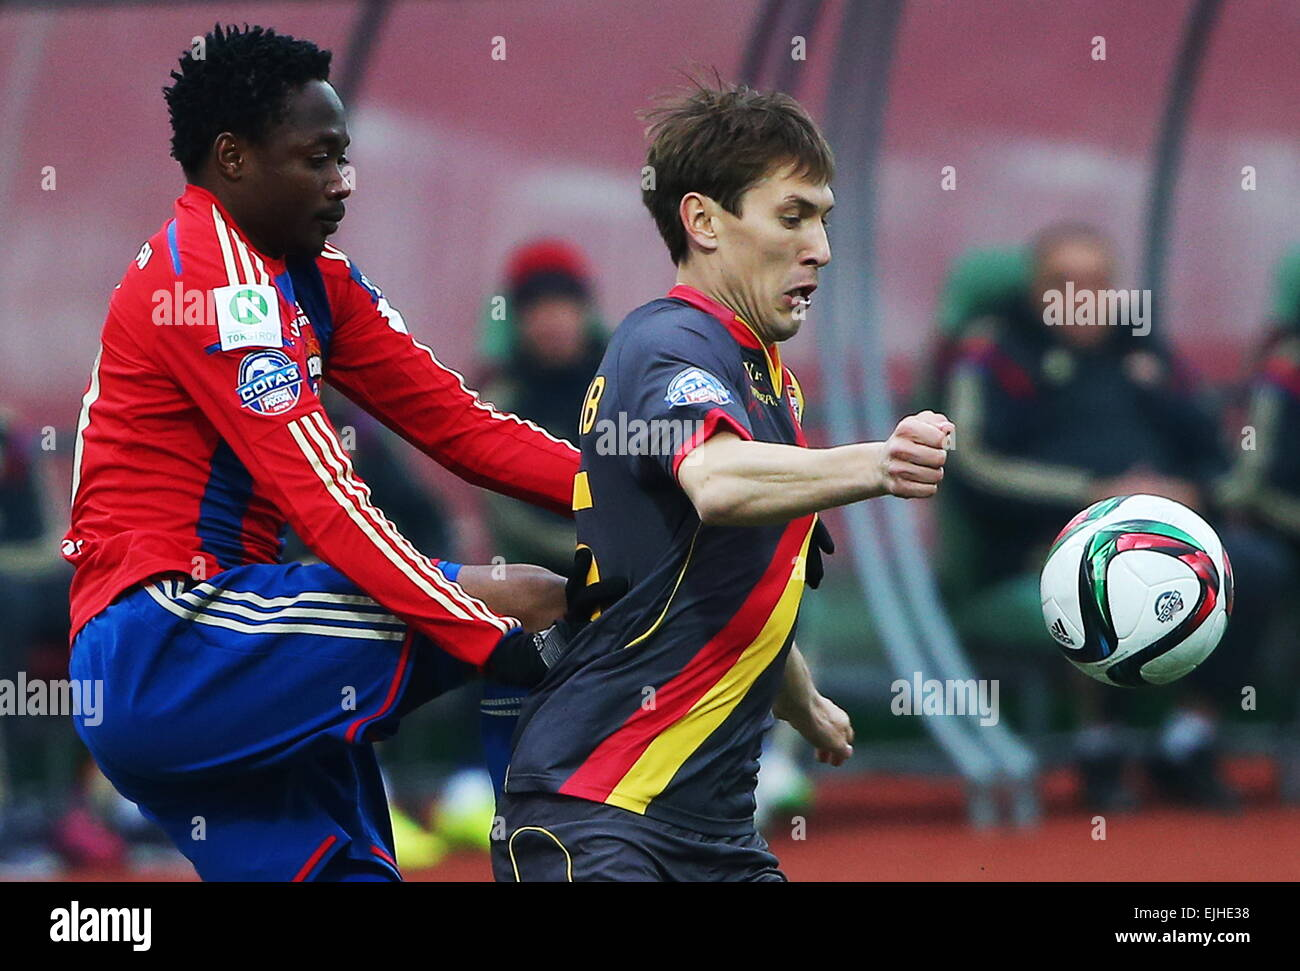 Moscow, Russia. 21st Mar, 2015. CSKA's Ahmed Musa (L) and Arsenal's Aleksander Kryuchkov fight for the ball - Stock Image